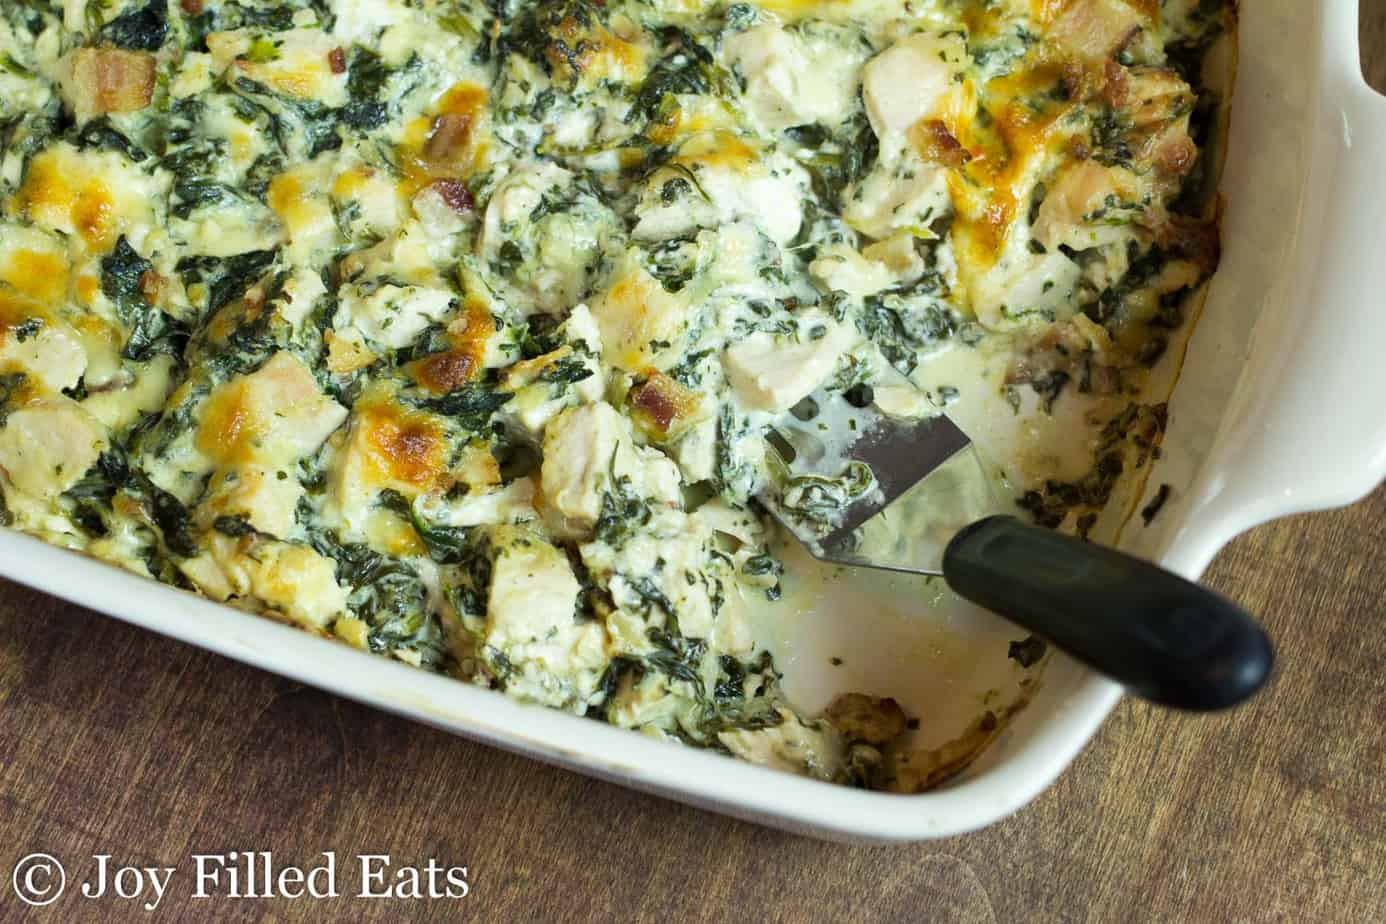 cooked chicken and spinach in a creamy sauce